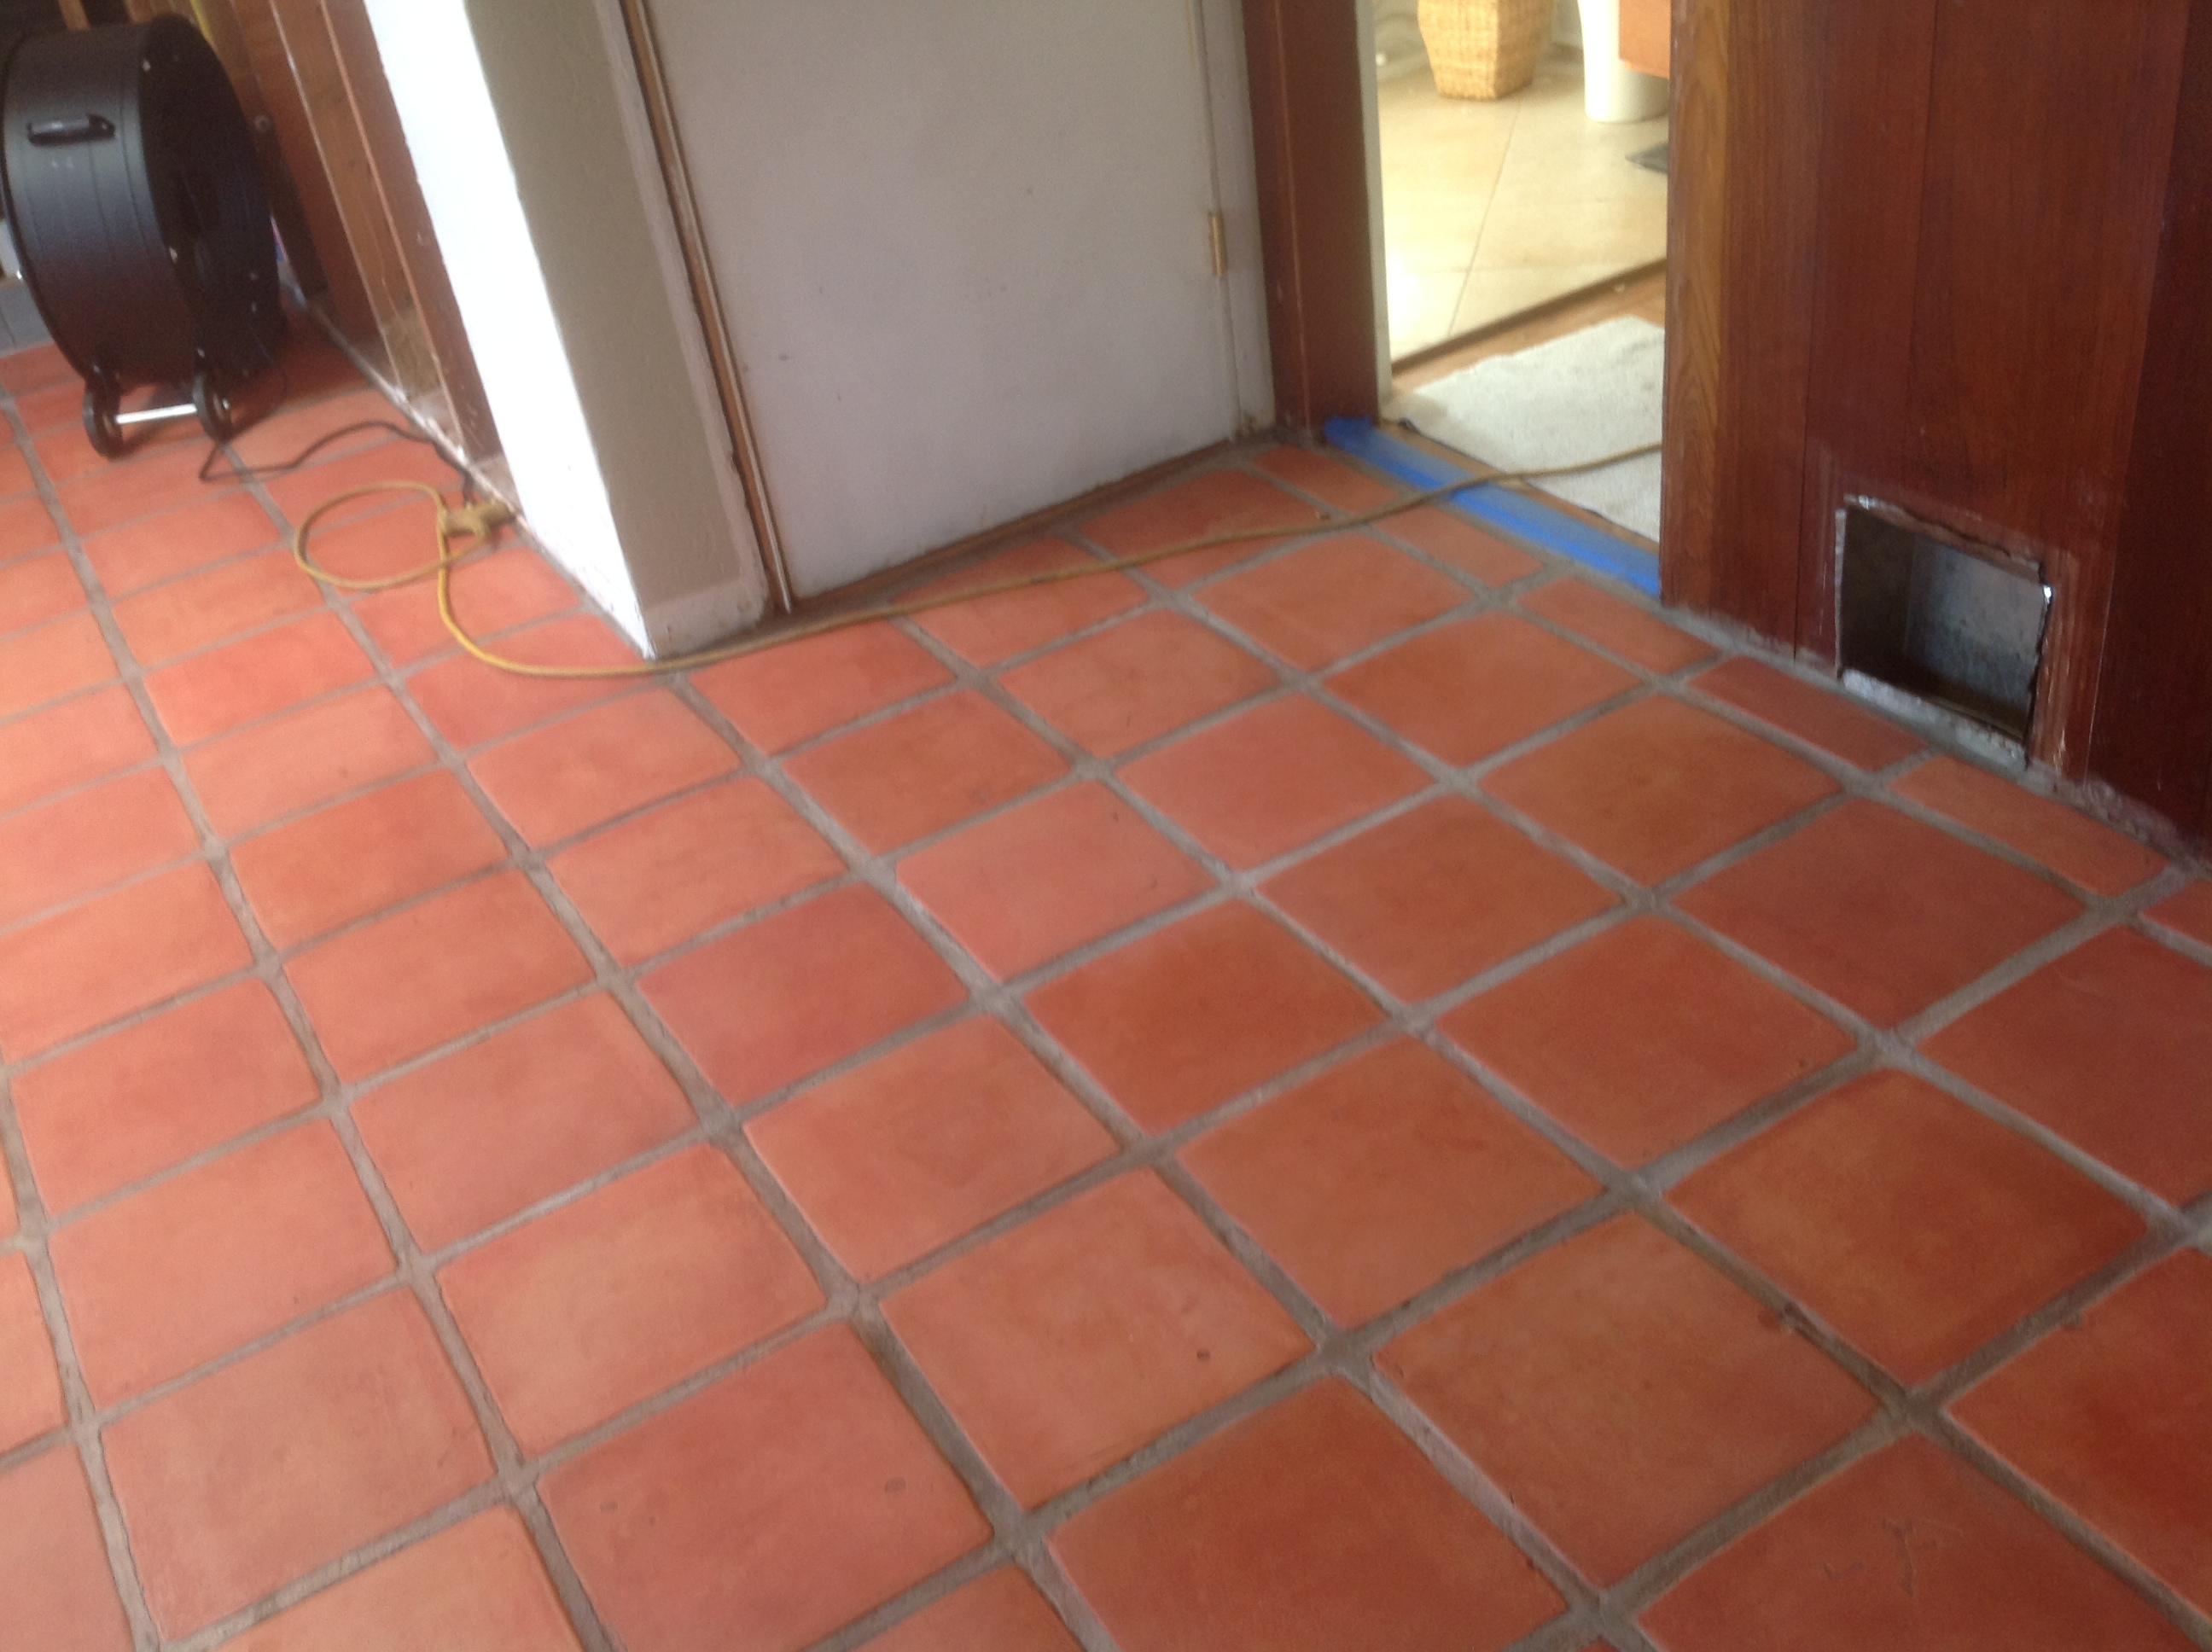 How To Seal Grout On Kitchen Floor